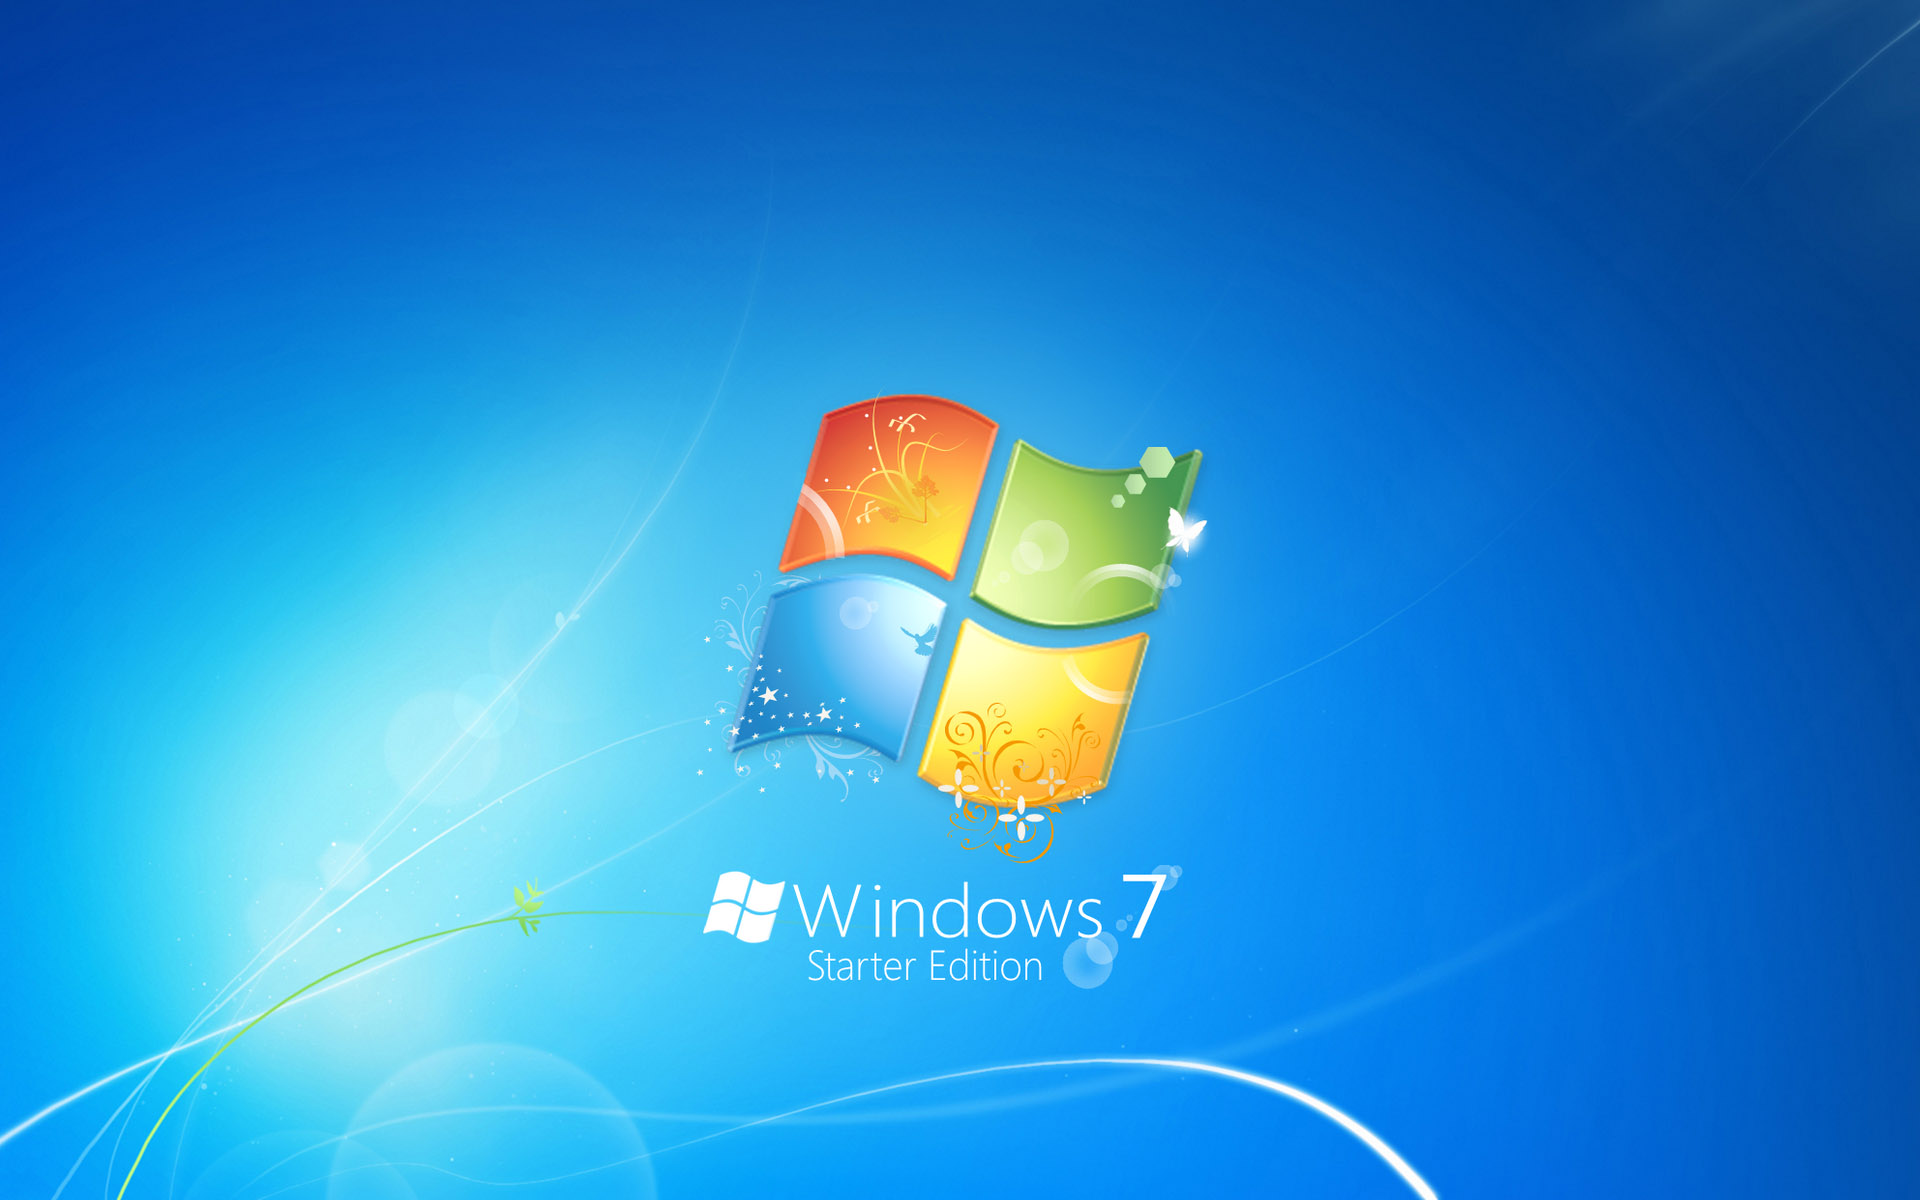 Windows 7 Starter Edition - Windows 7 Wallpaper